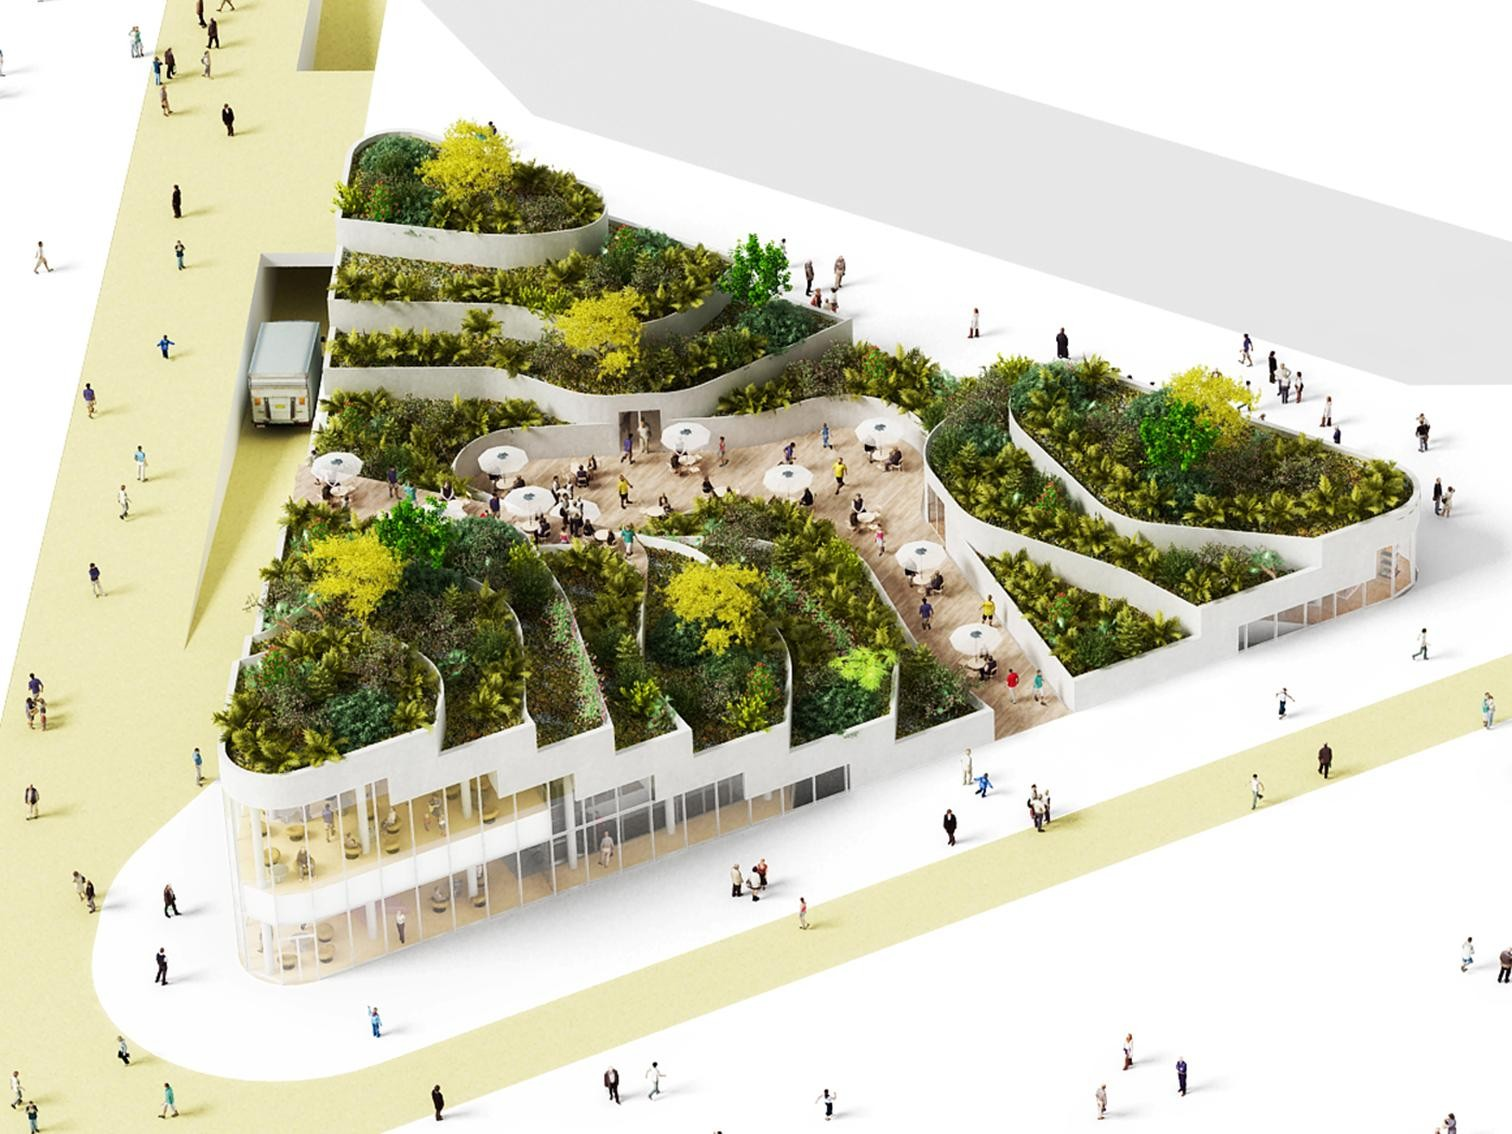 Sanya Lake Park Super Market Proposal / NL Architects, Courtesy of NL Architects